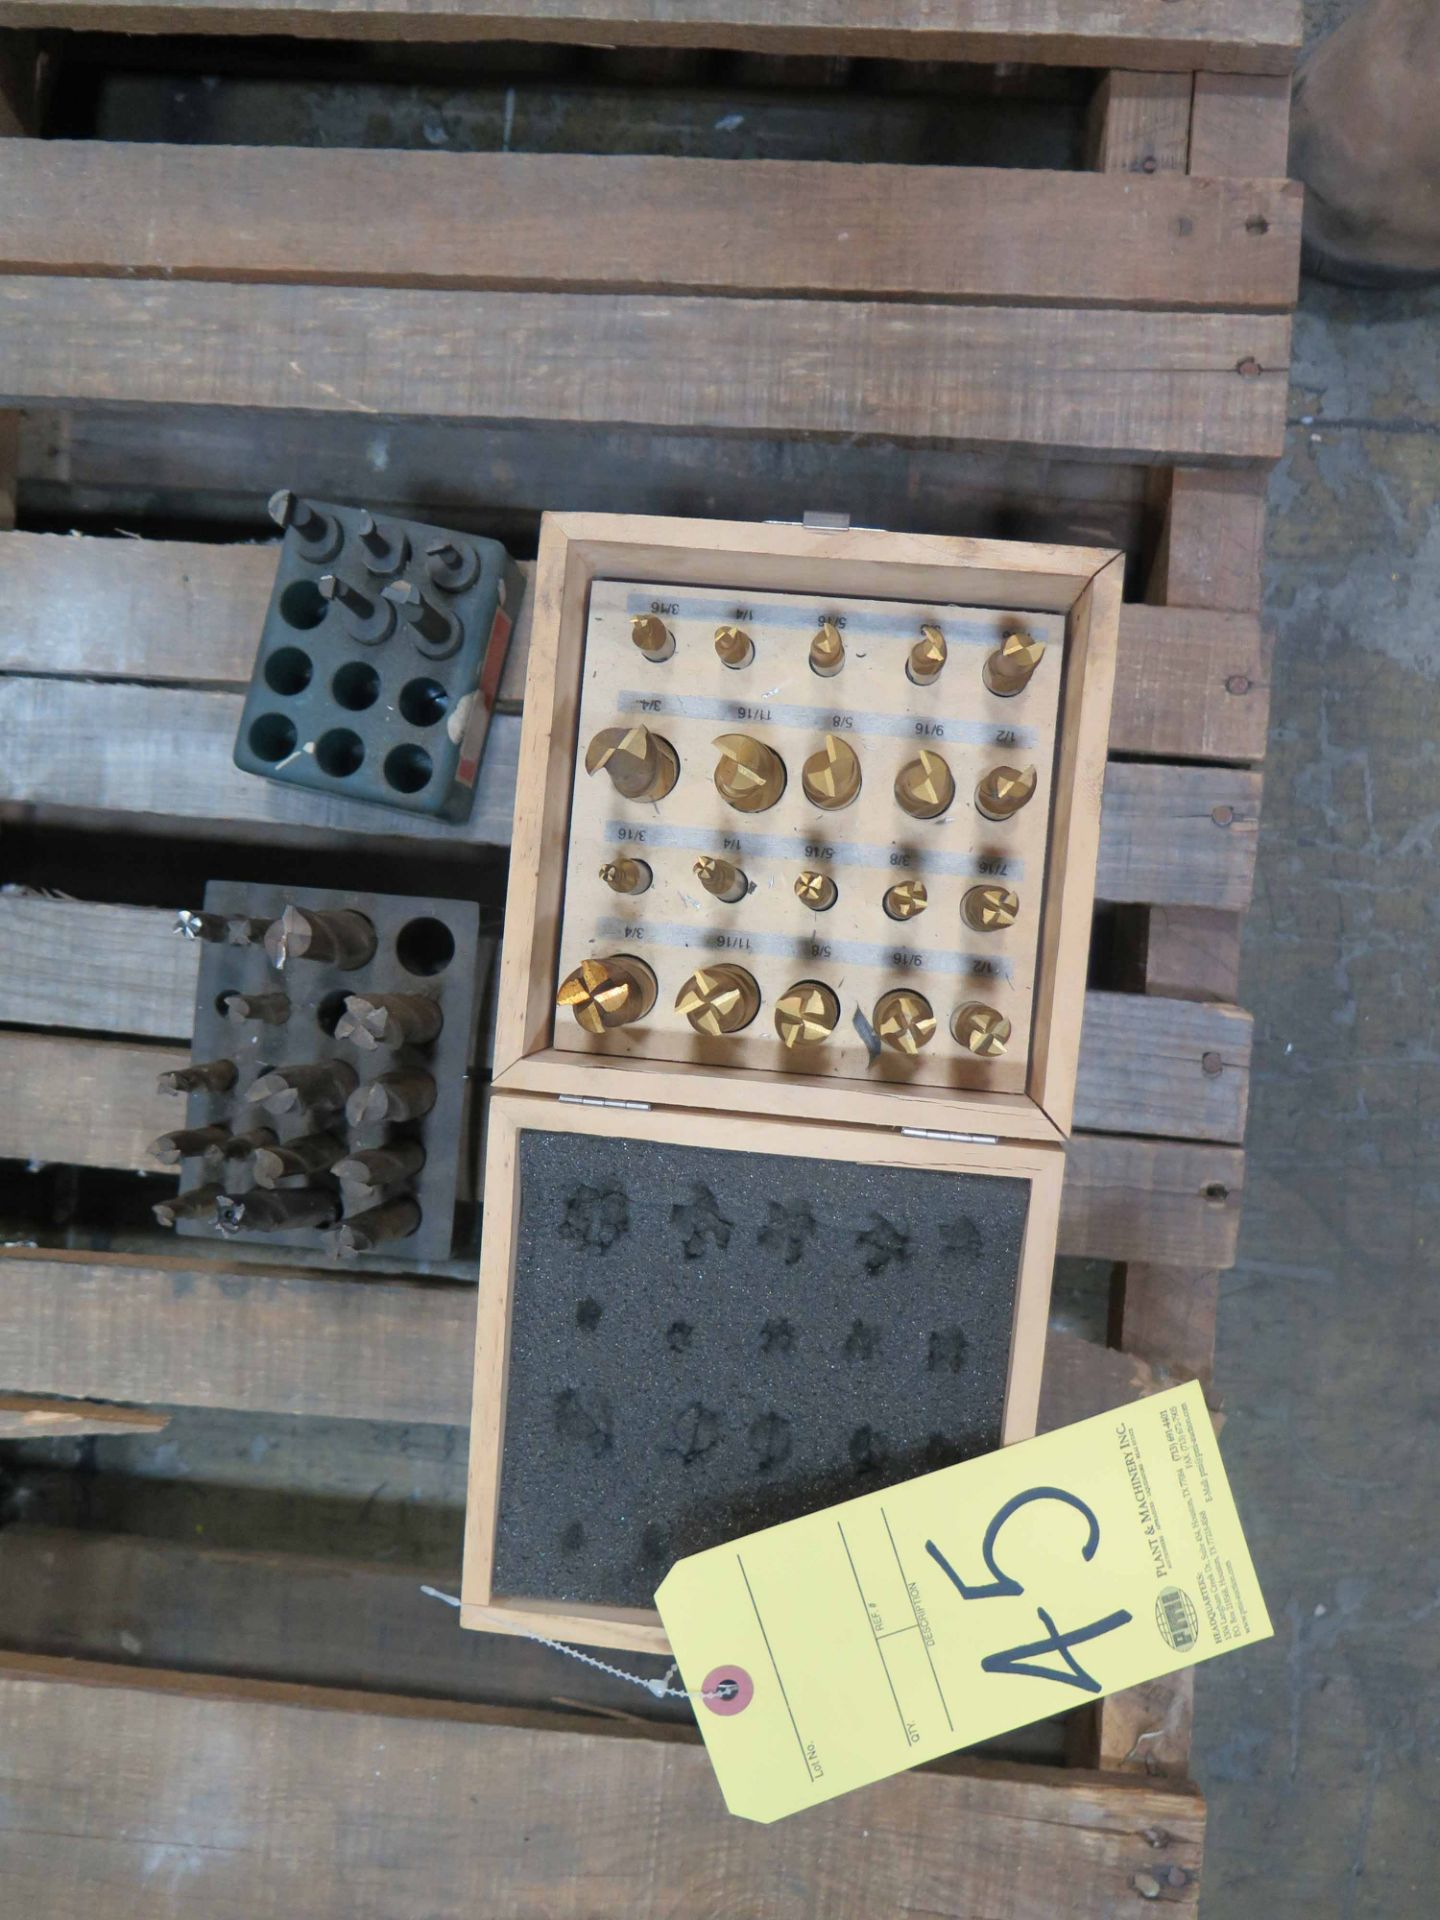 Lot 45 - LOT CONSISTING OF: double ended end mills, single end mills & cutters, assorted